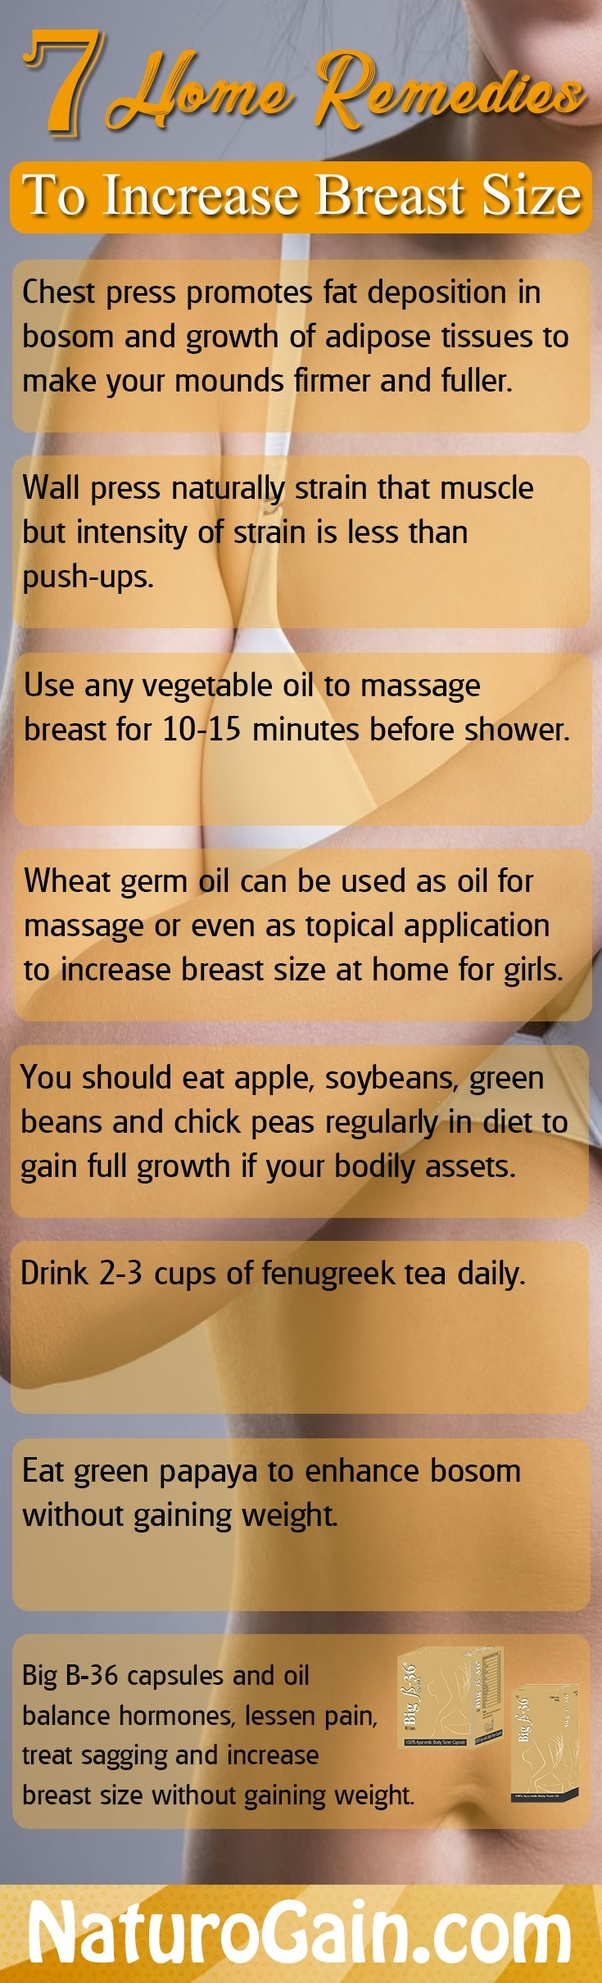 breast home increase remedies to